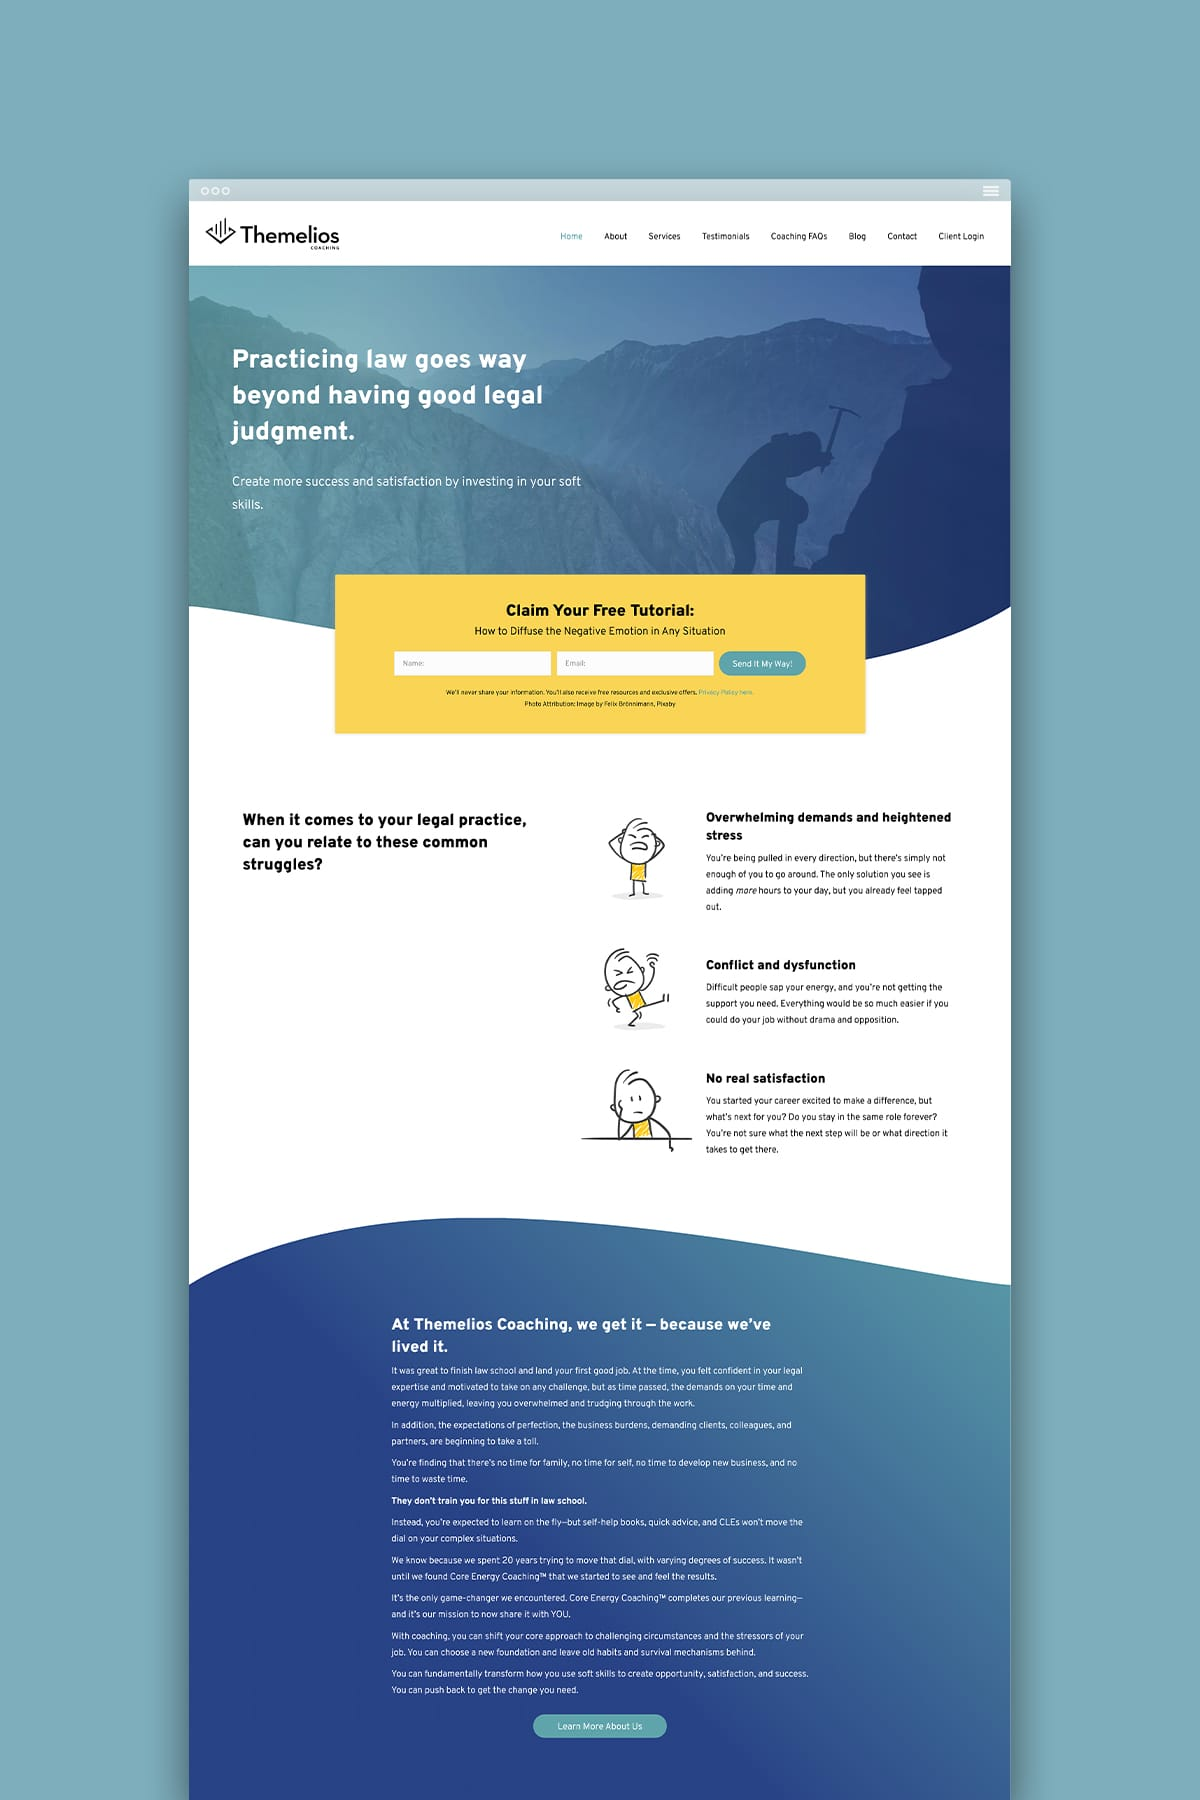 Themelios Coaching's Home Page Design